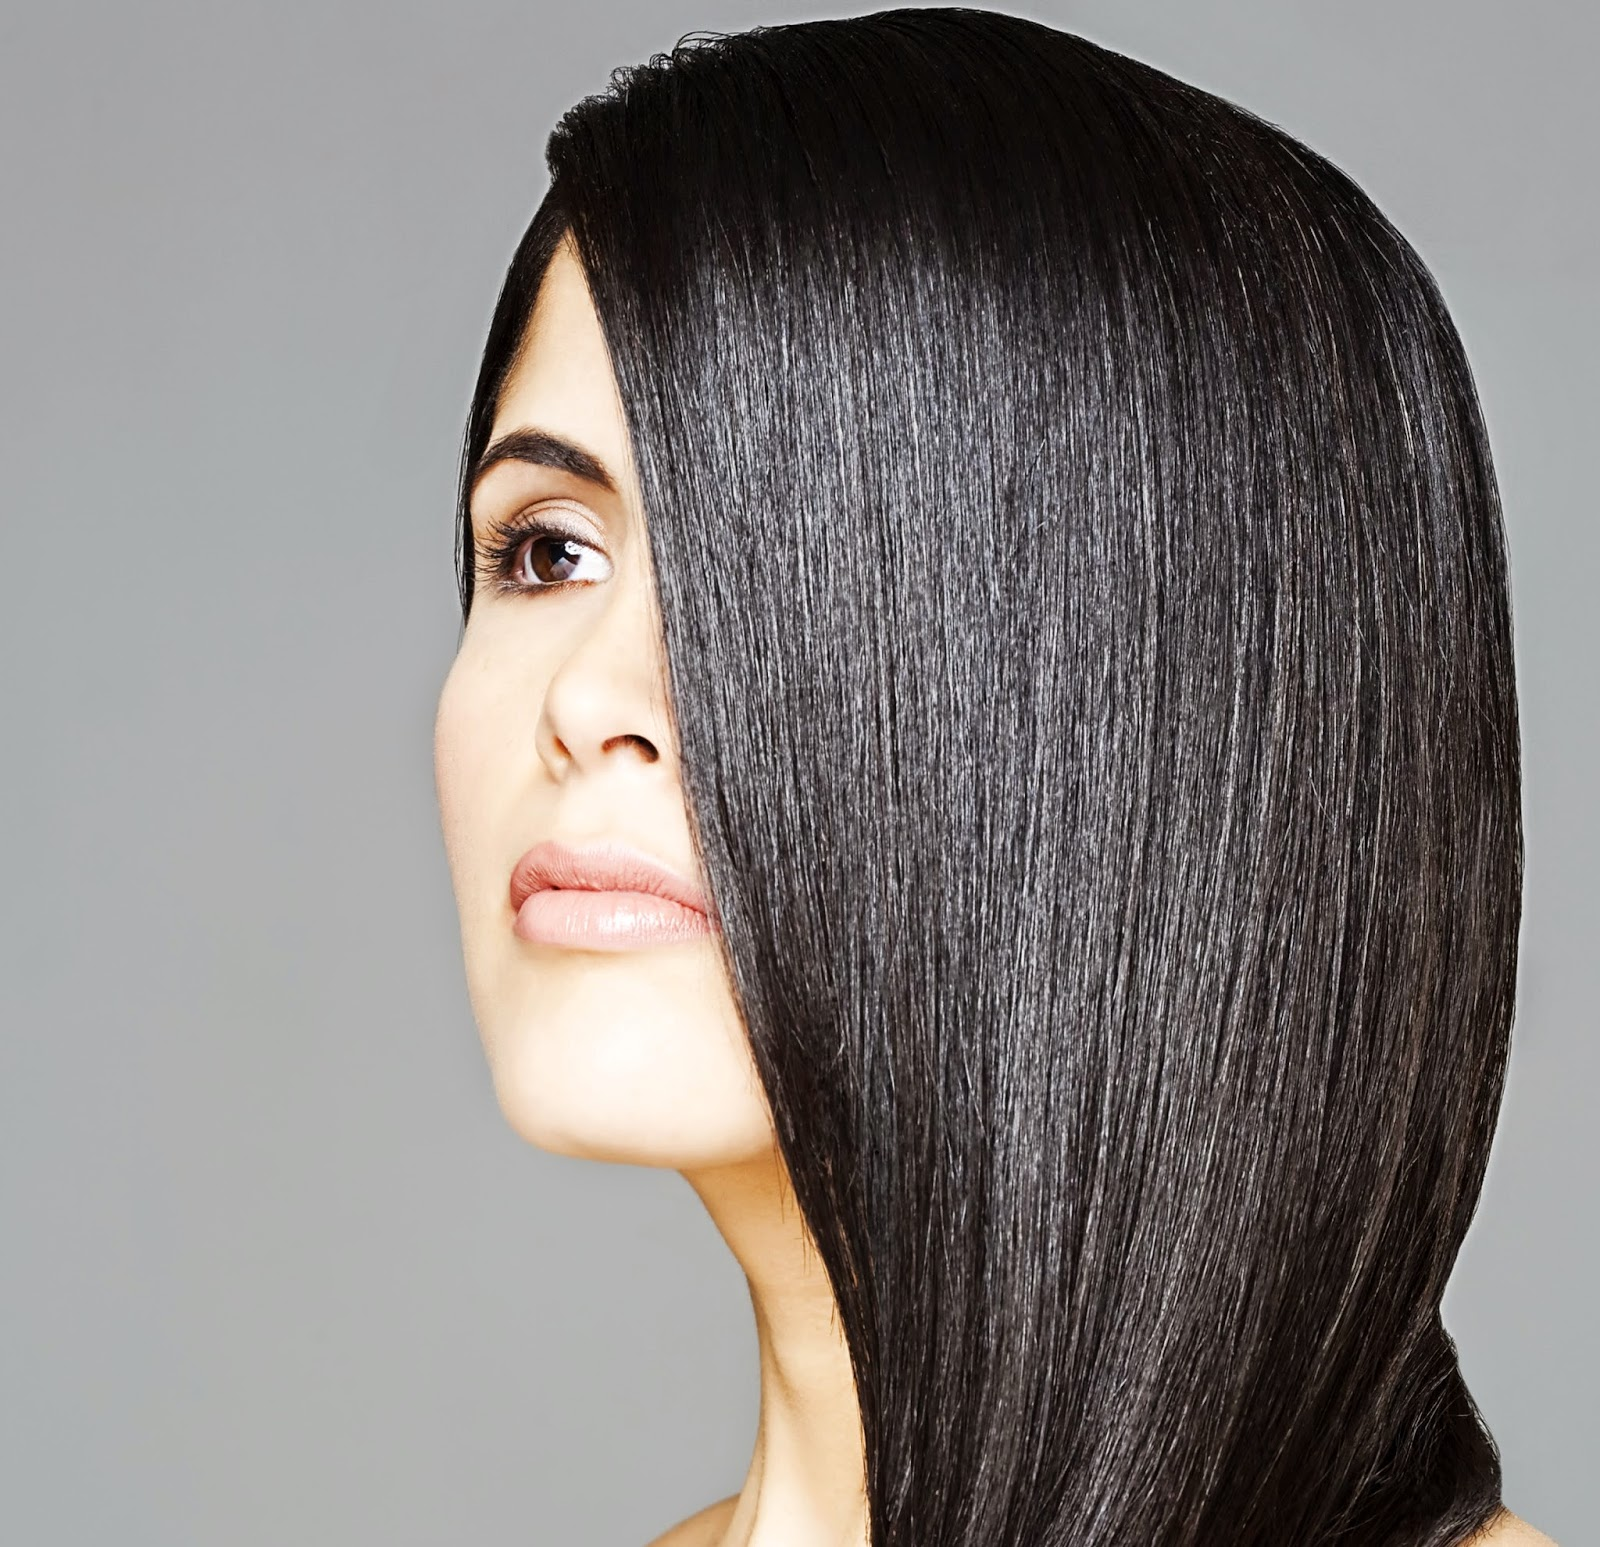 Essential Vitamins and Supplements for Shiny Hair